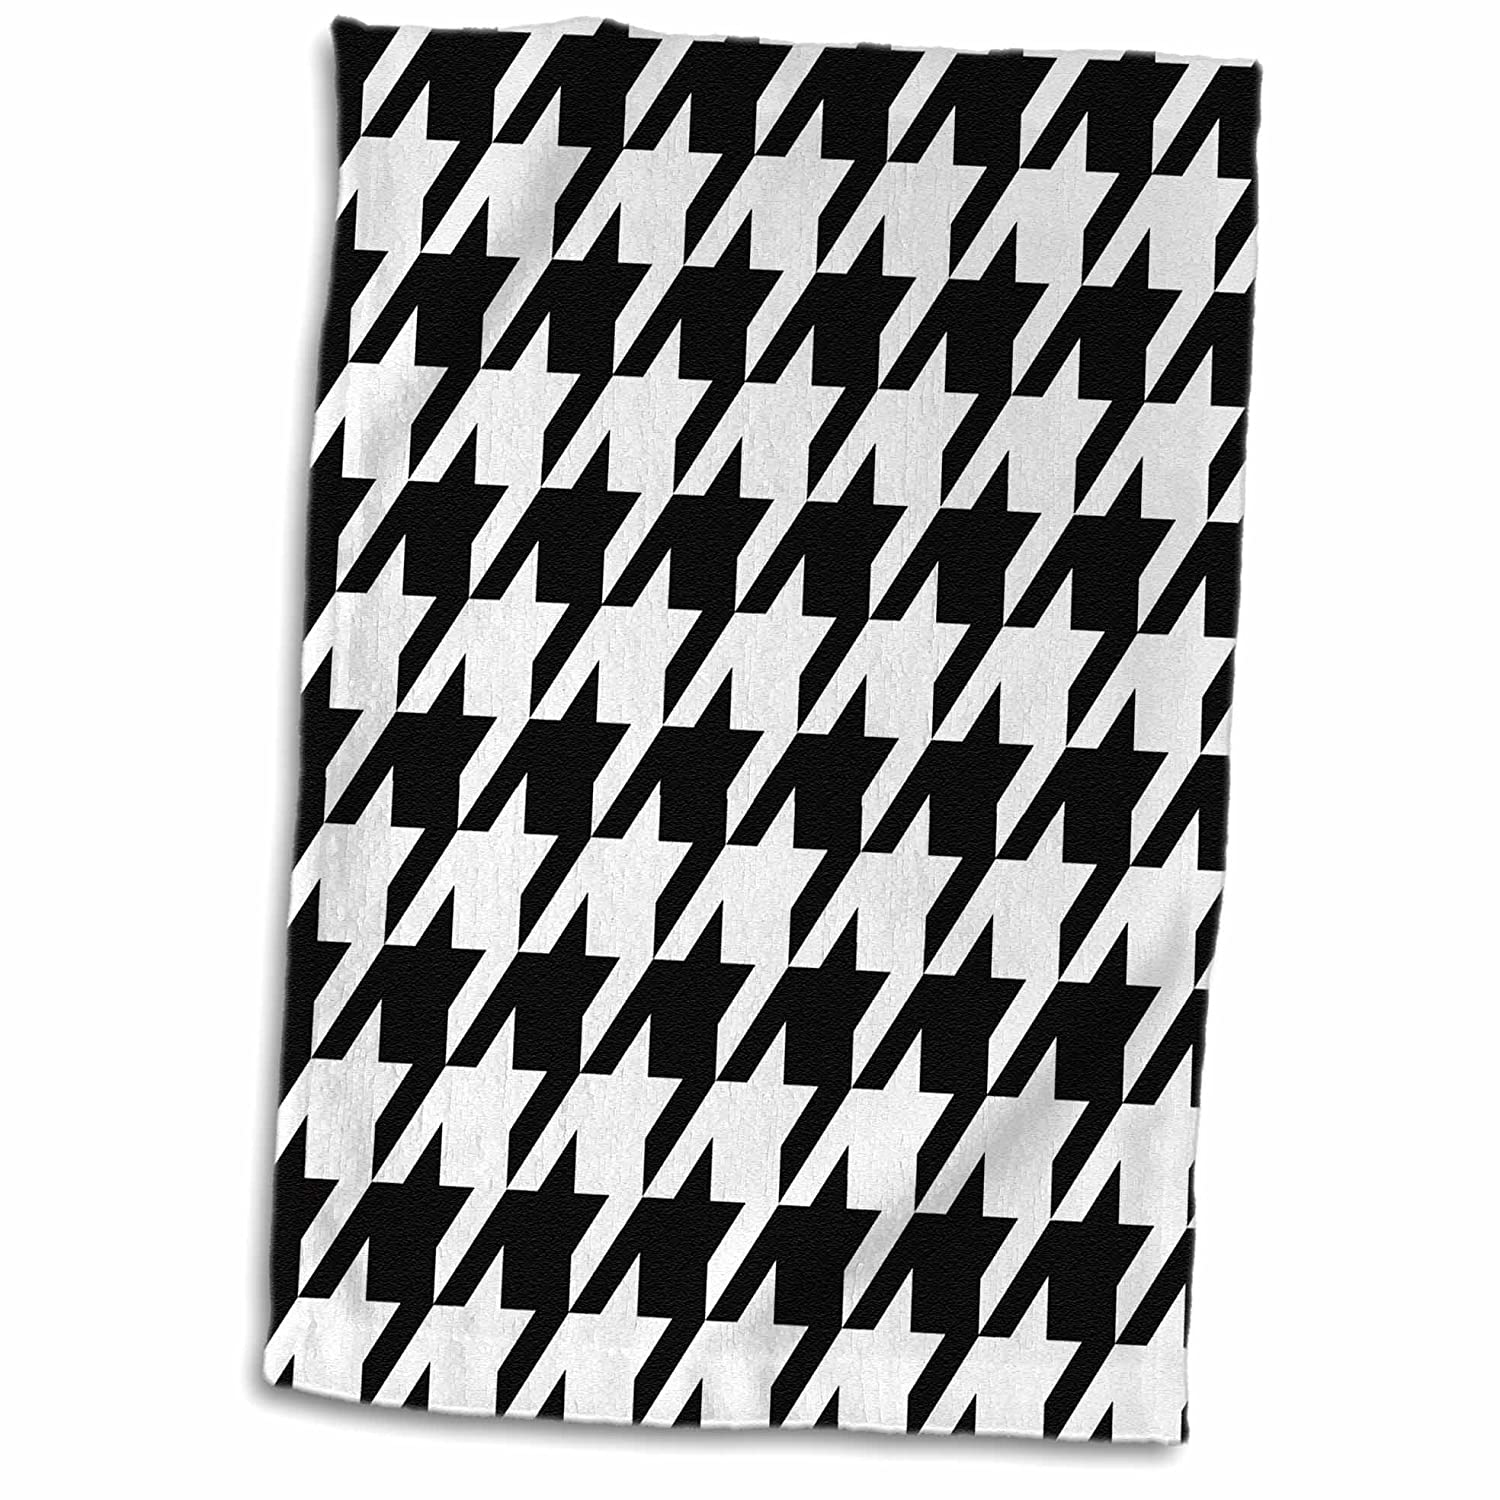 Large TWL/_35483/_1 Towel 15 x 22 3D Rose Black and White Hounds Tooth